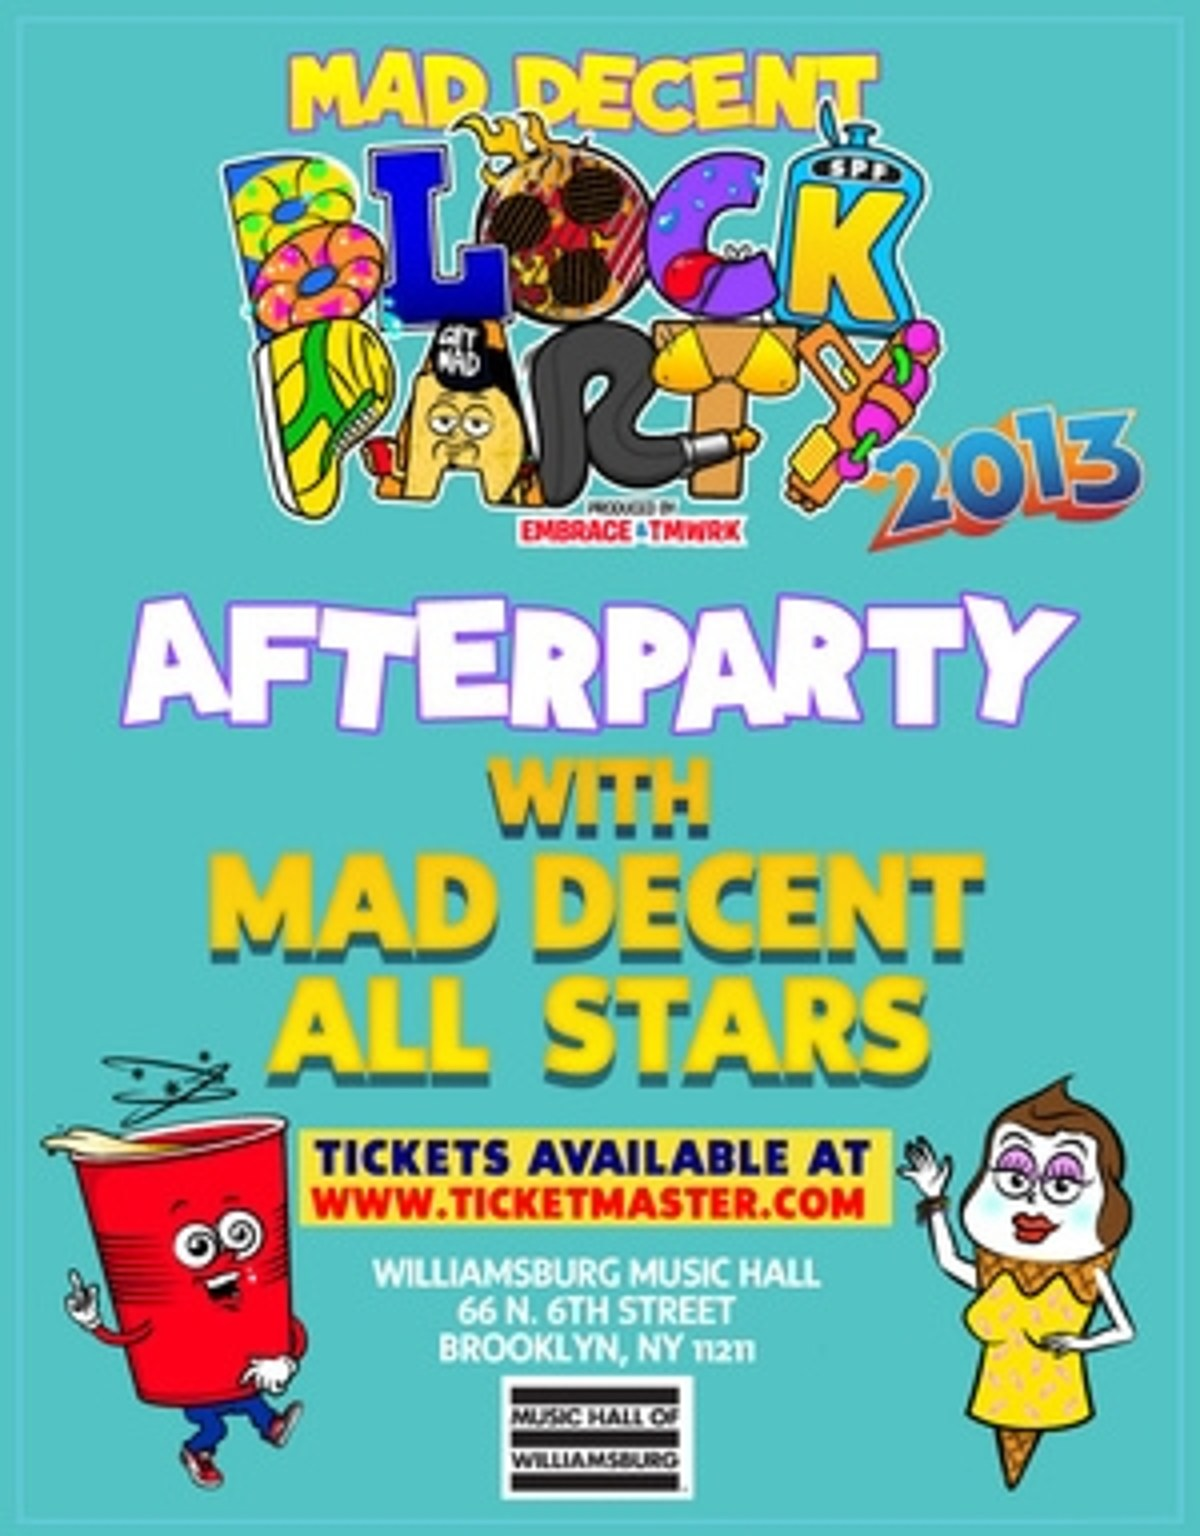 Mad Decent Block Party afterparty happening at MHOW